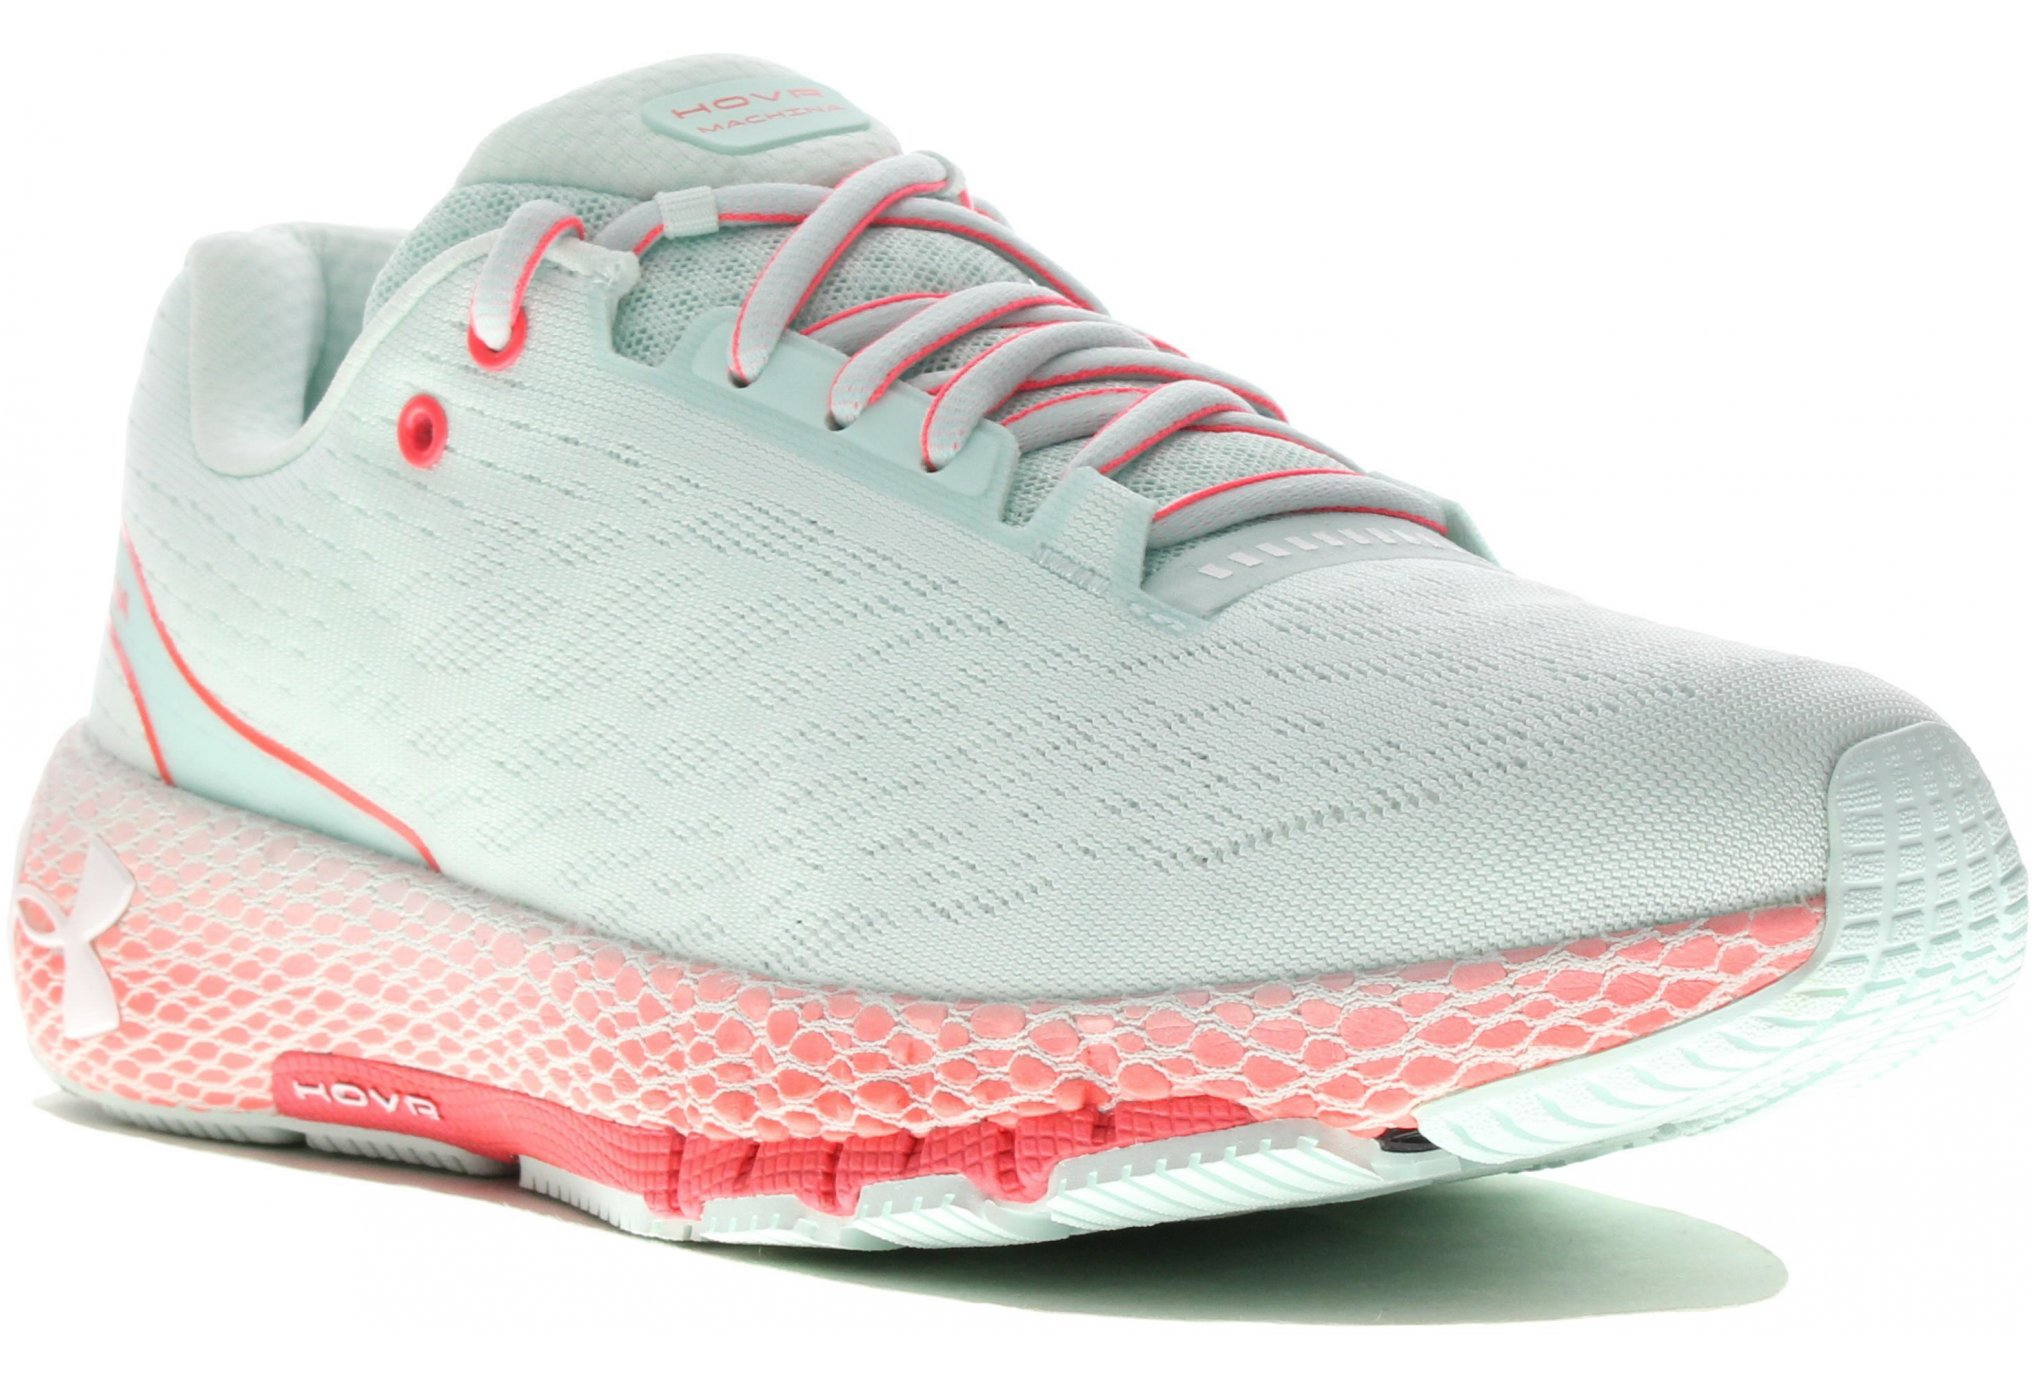 Under Armour HOVR Machina Chaussures running femme